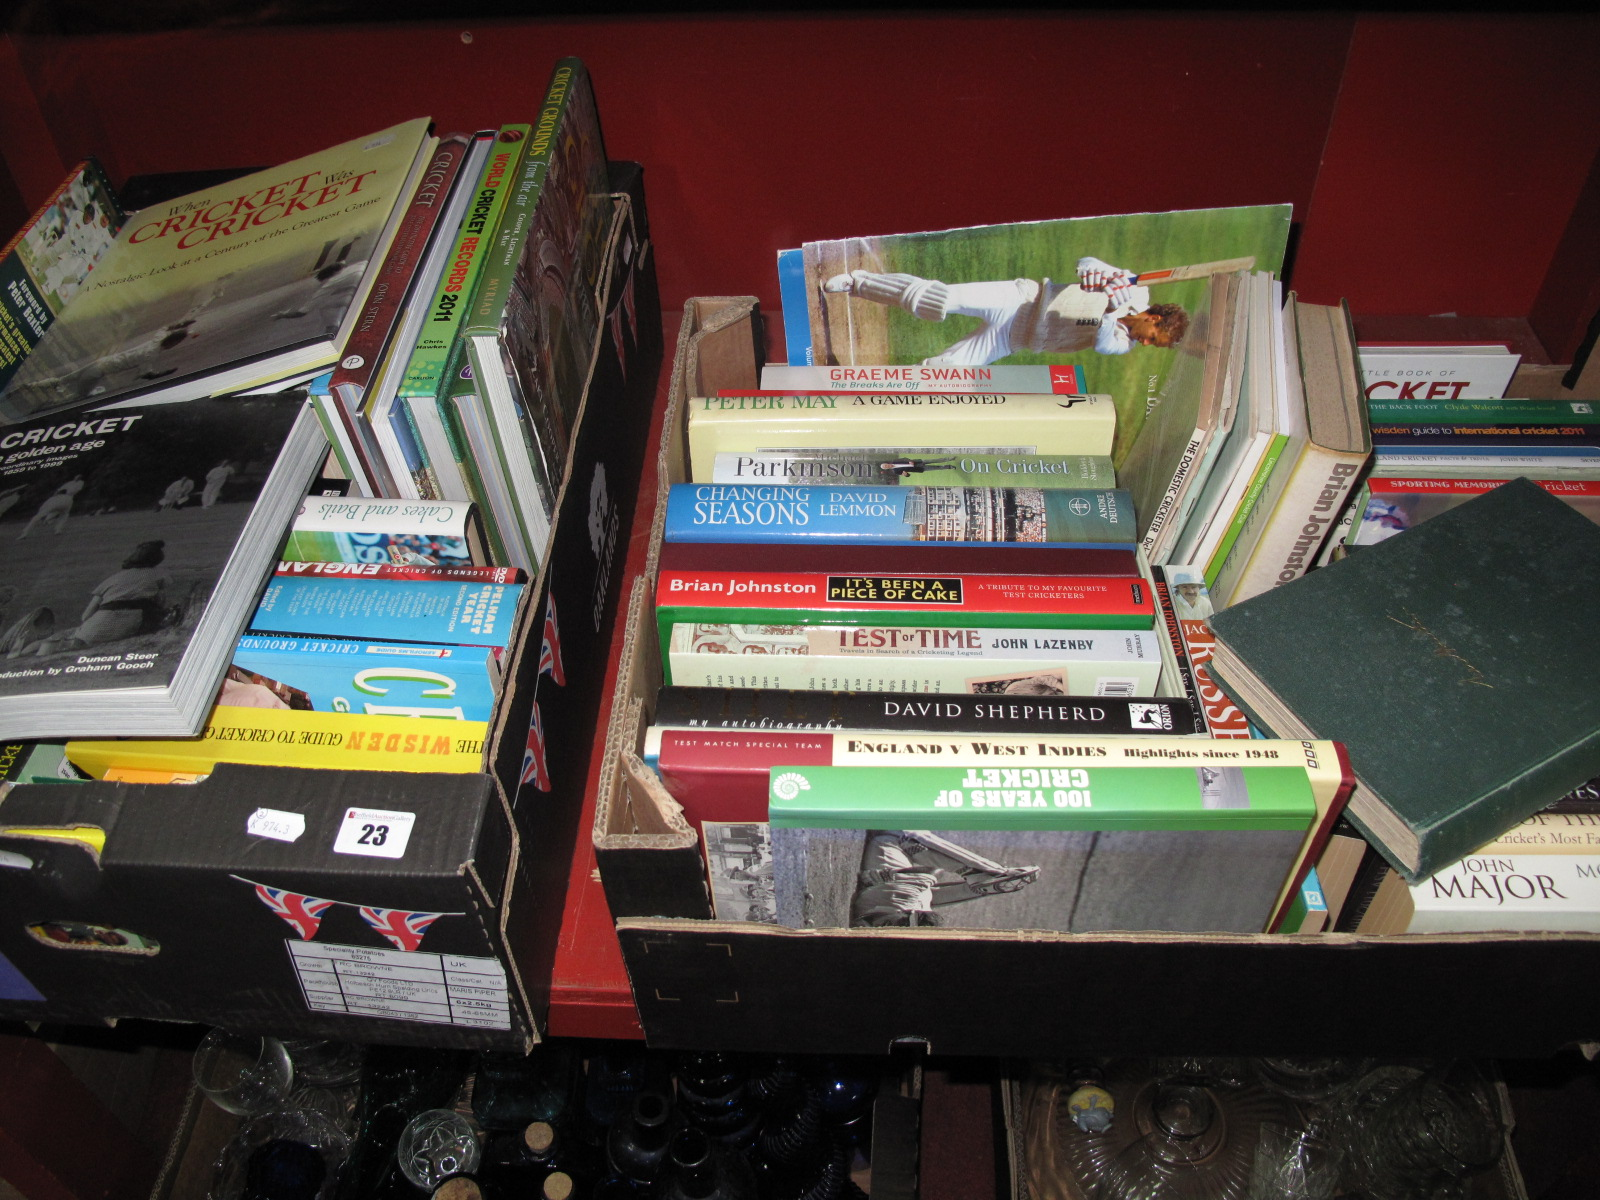 Lot 23 - Cricket Literature, a collection of cricket biographies, guides, reference history books,